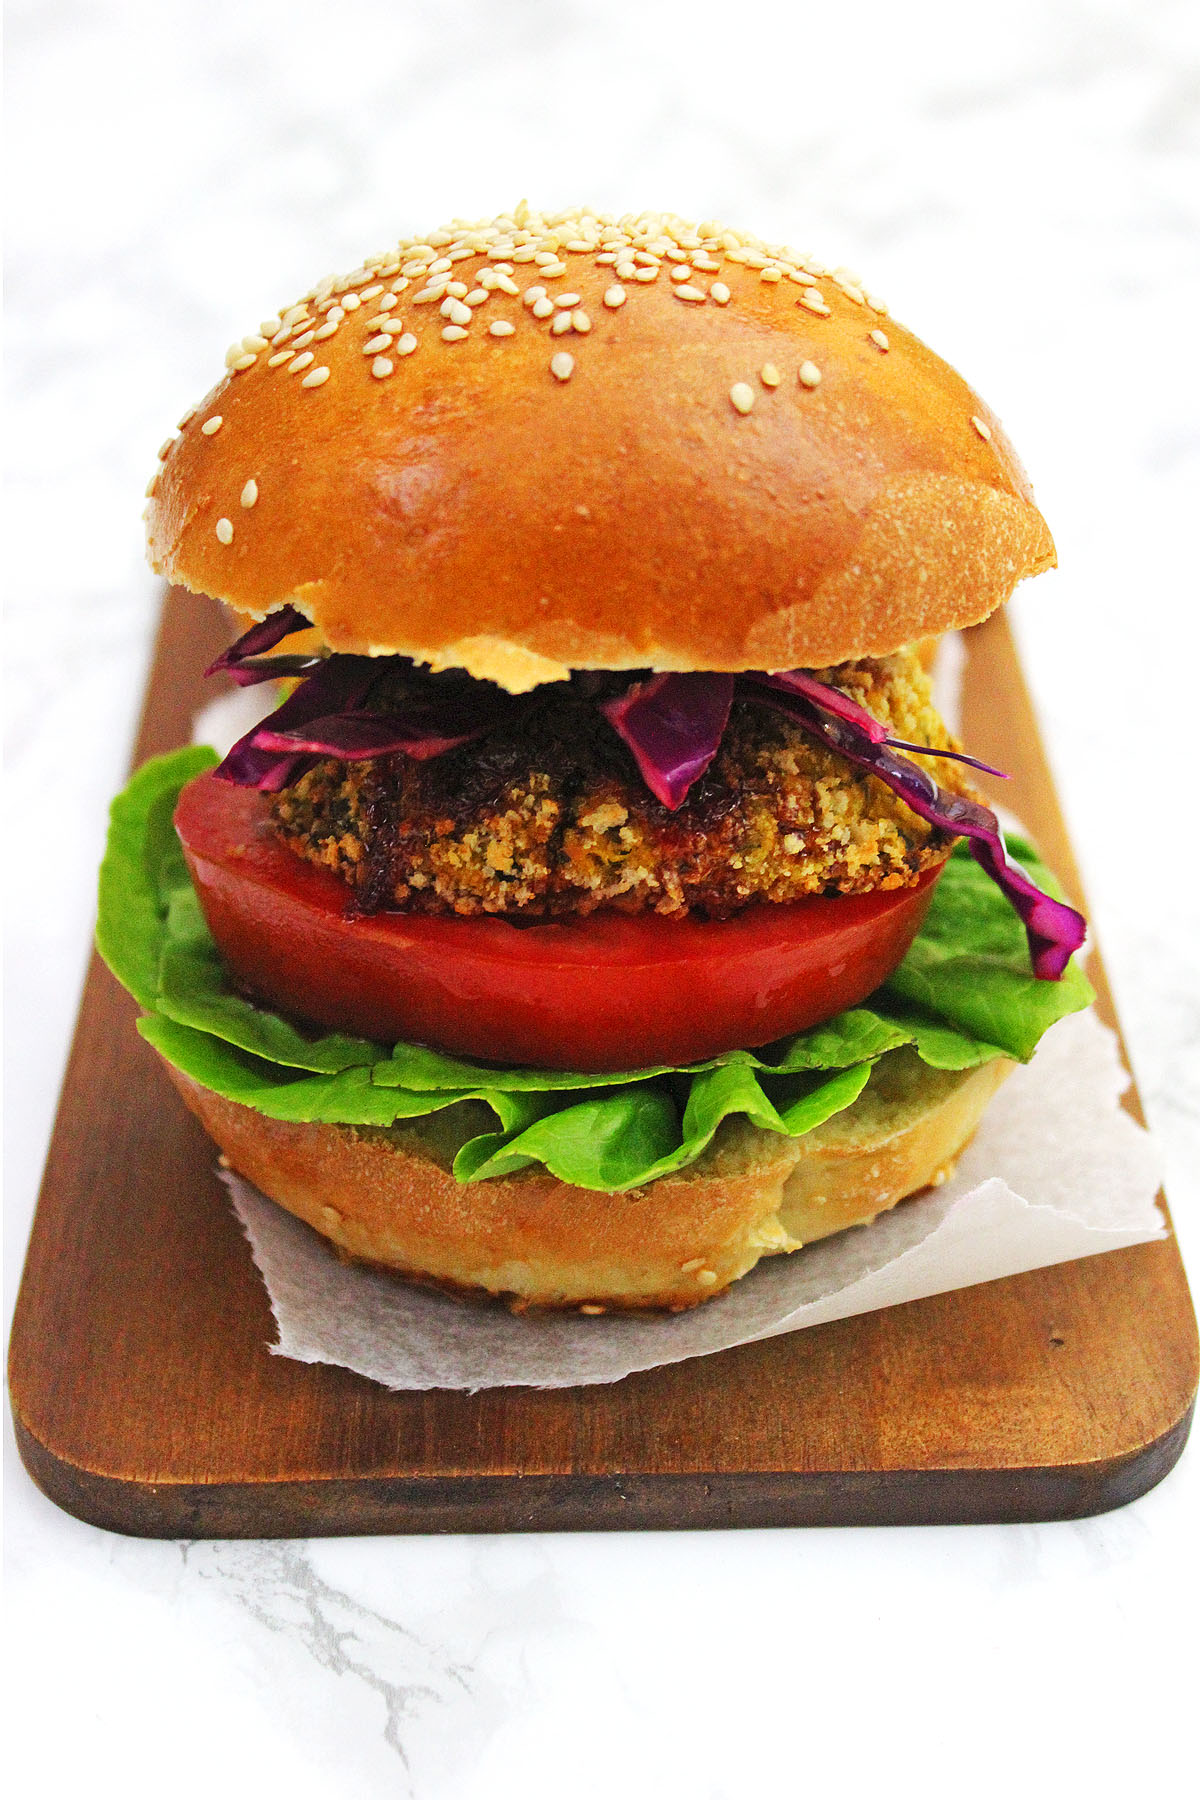 buns everything buns smoked rye buns golden buttery sesame burger buns ...